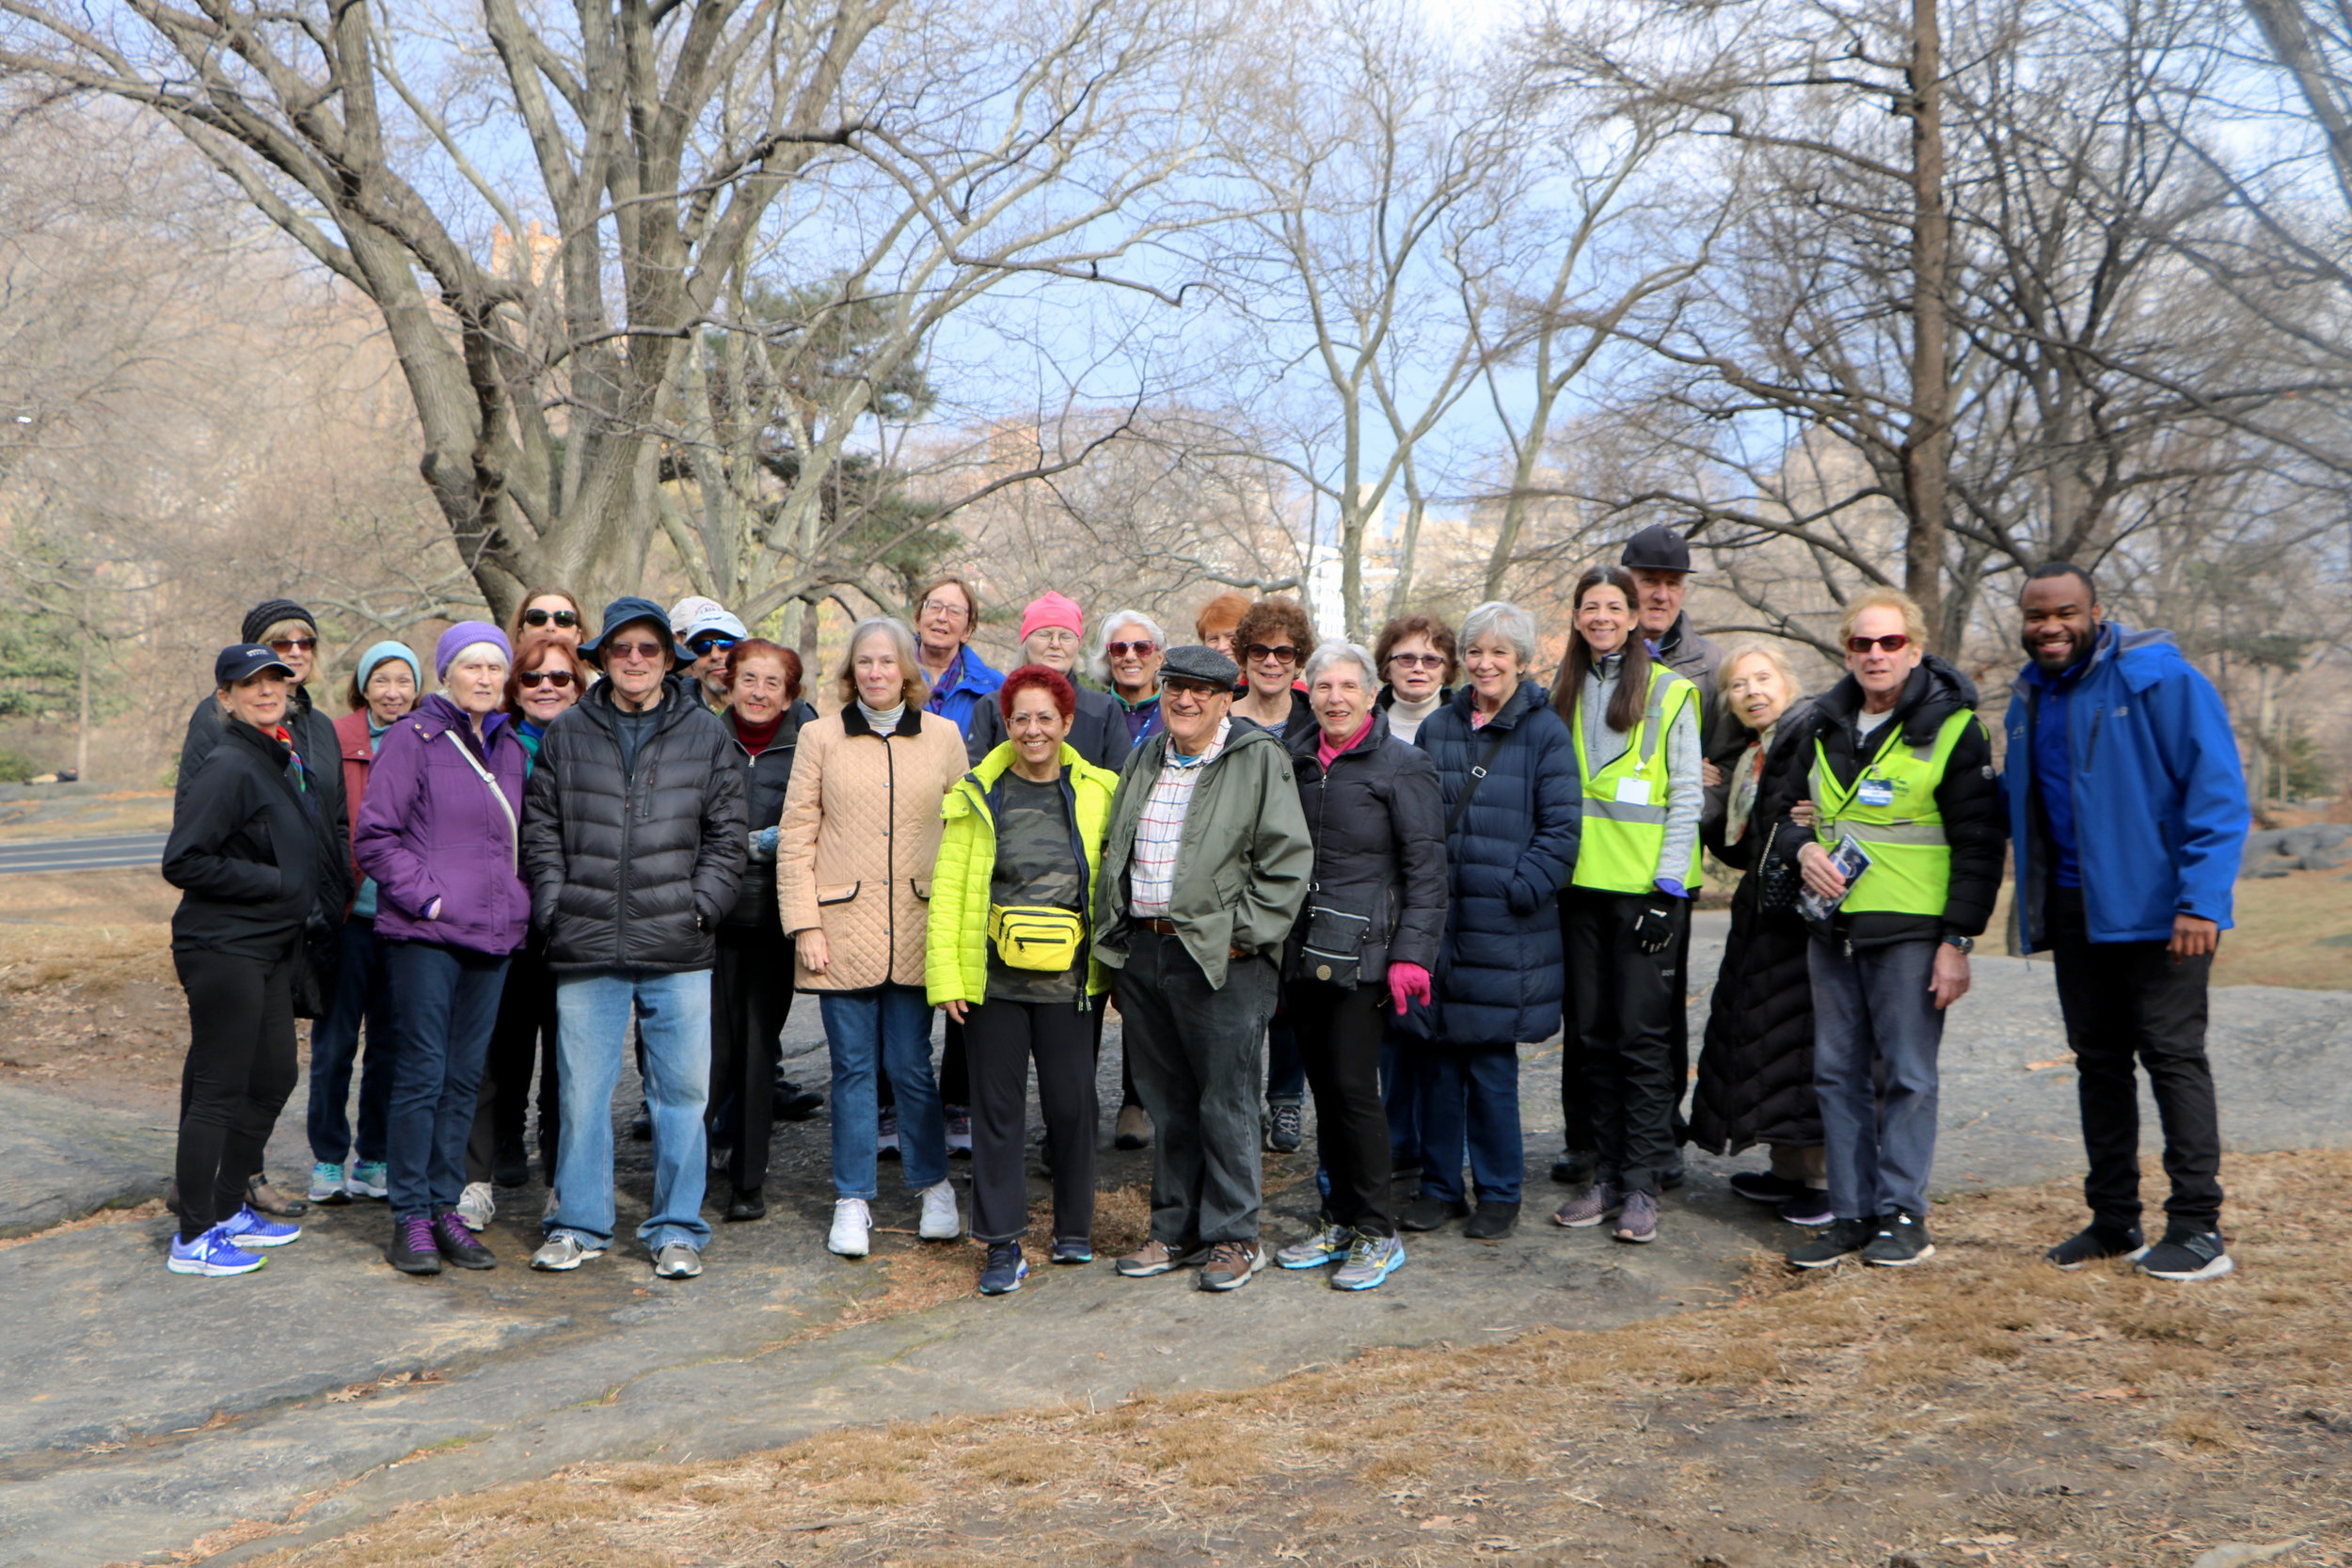 Group Photos of NYRR Volunteers